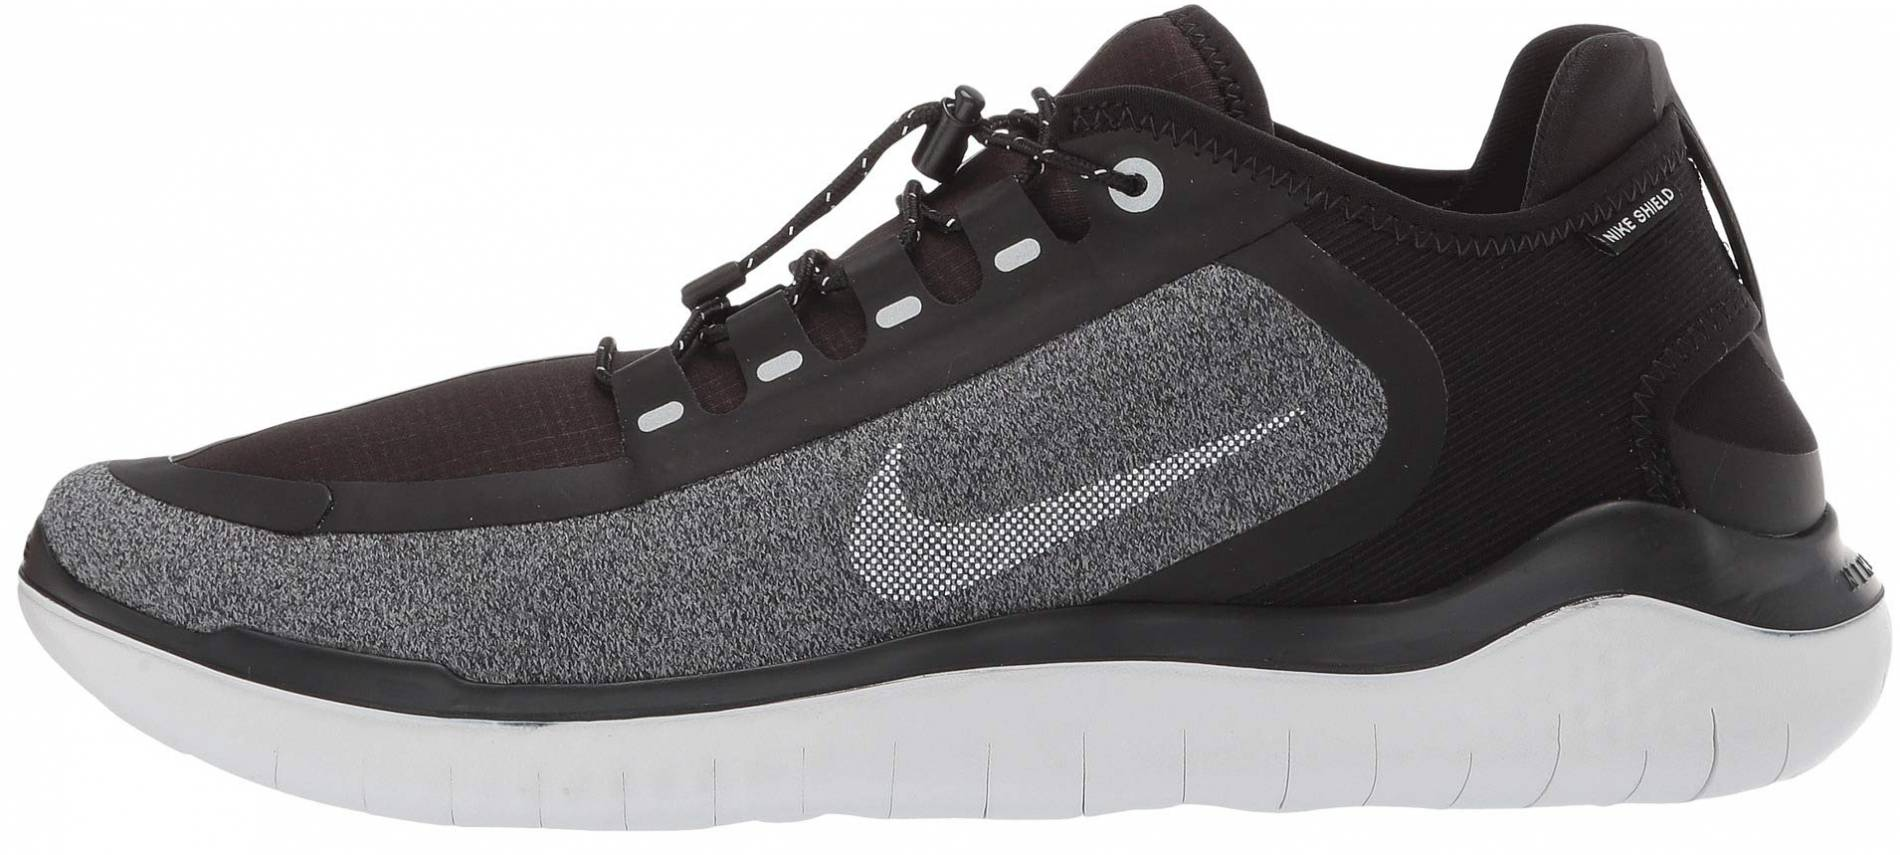 Fragante usted está Limitado  Save 18% on Nike Water Repellent Running Shoes (19 Models in Stock) |  RunRepeat